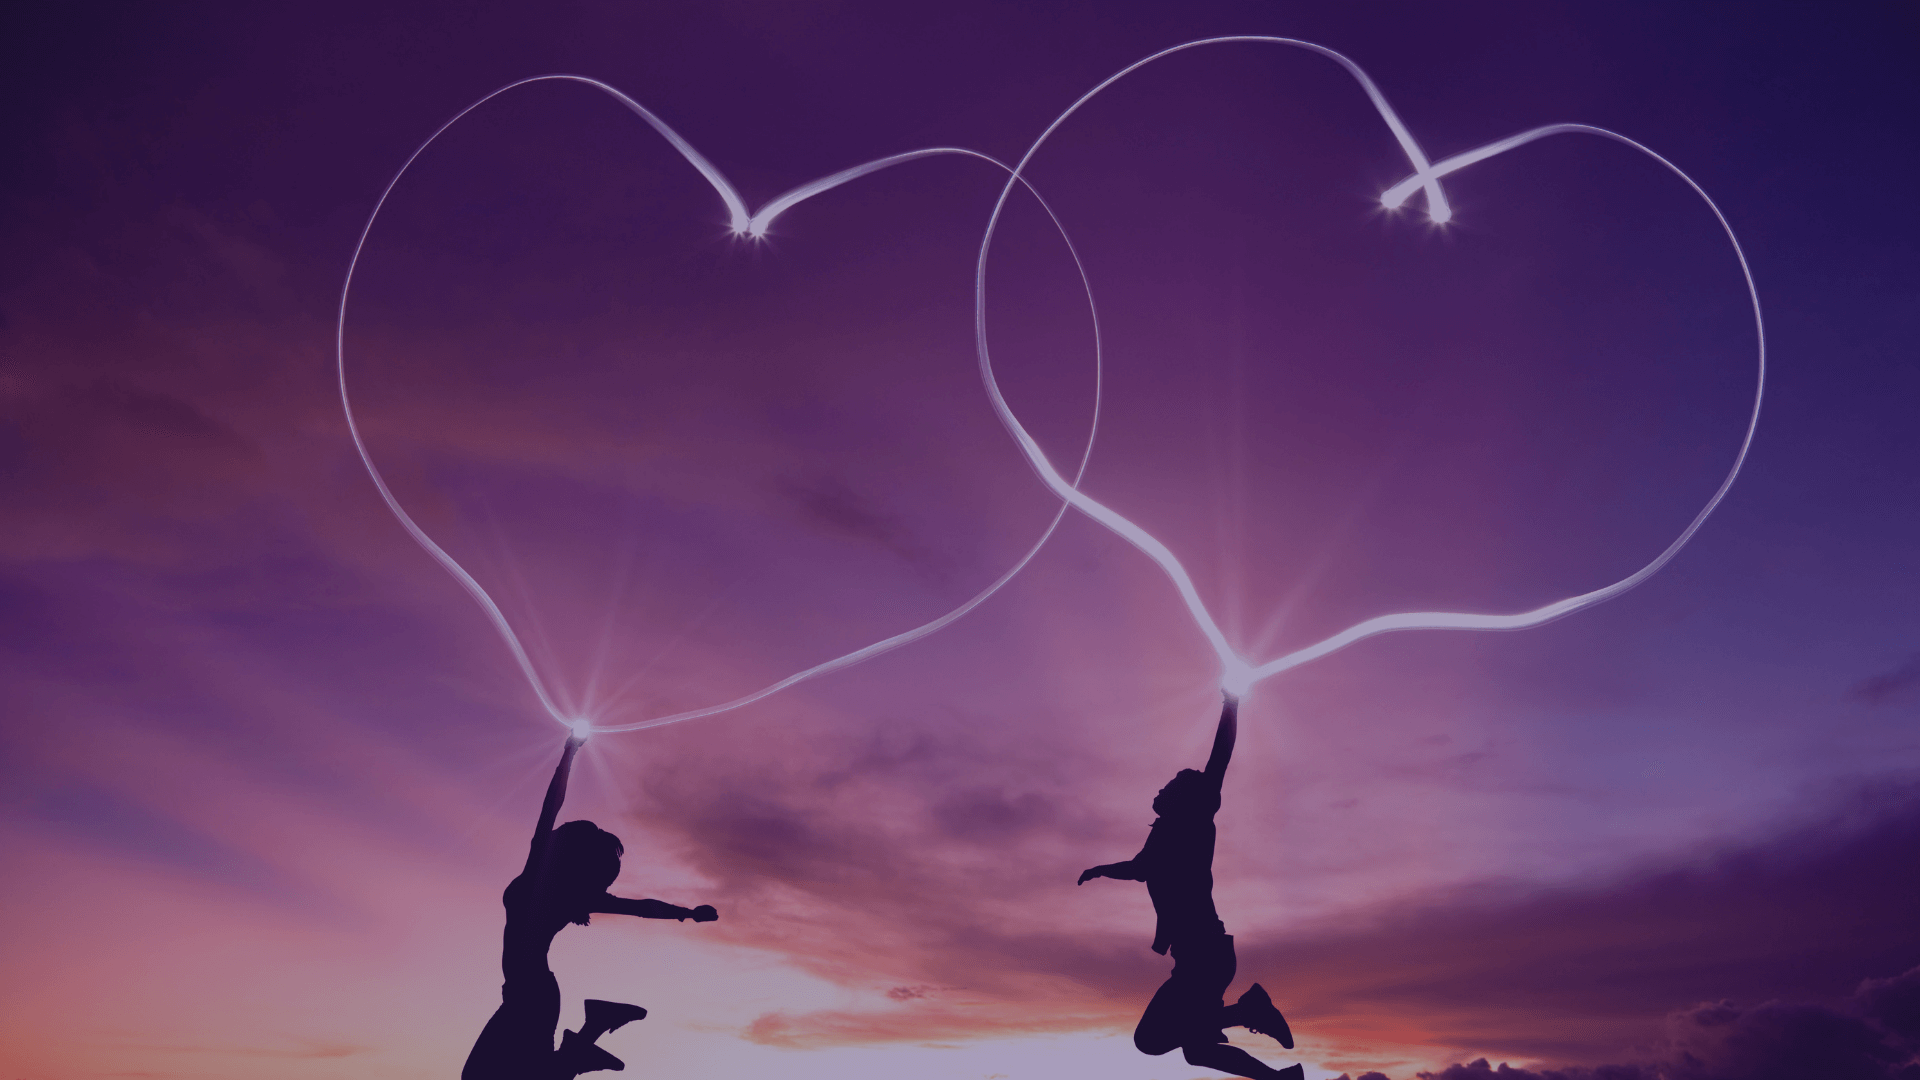 two people jumping in celebration against sunset